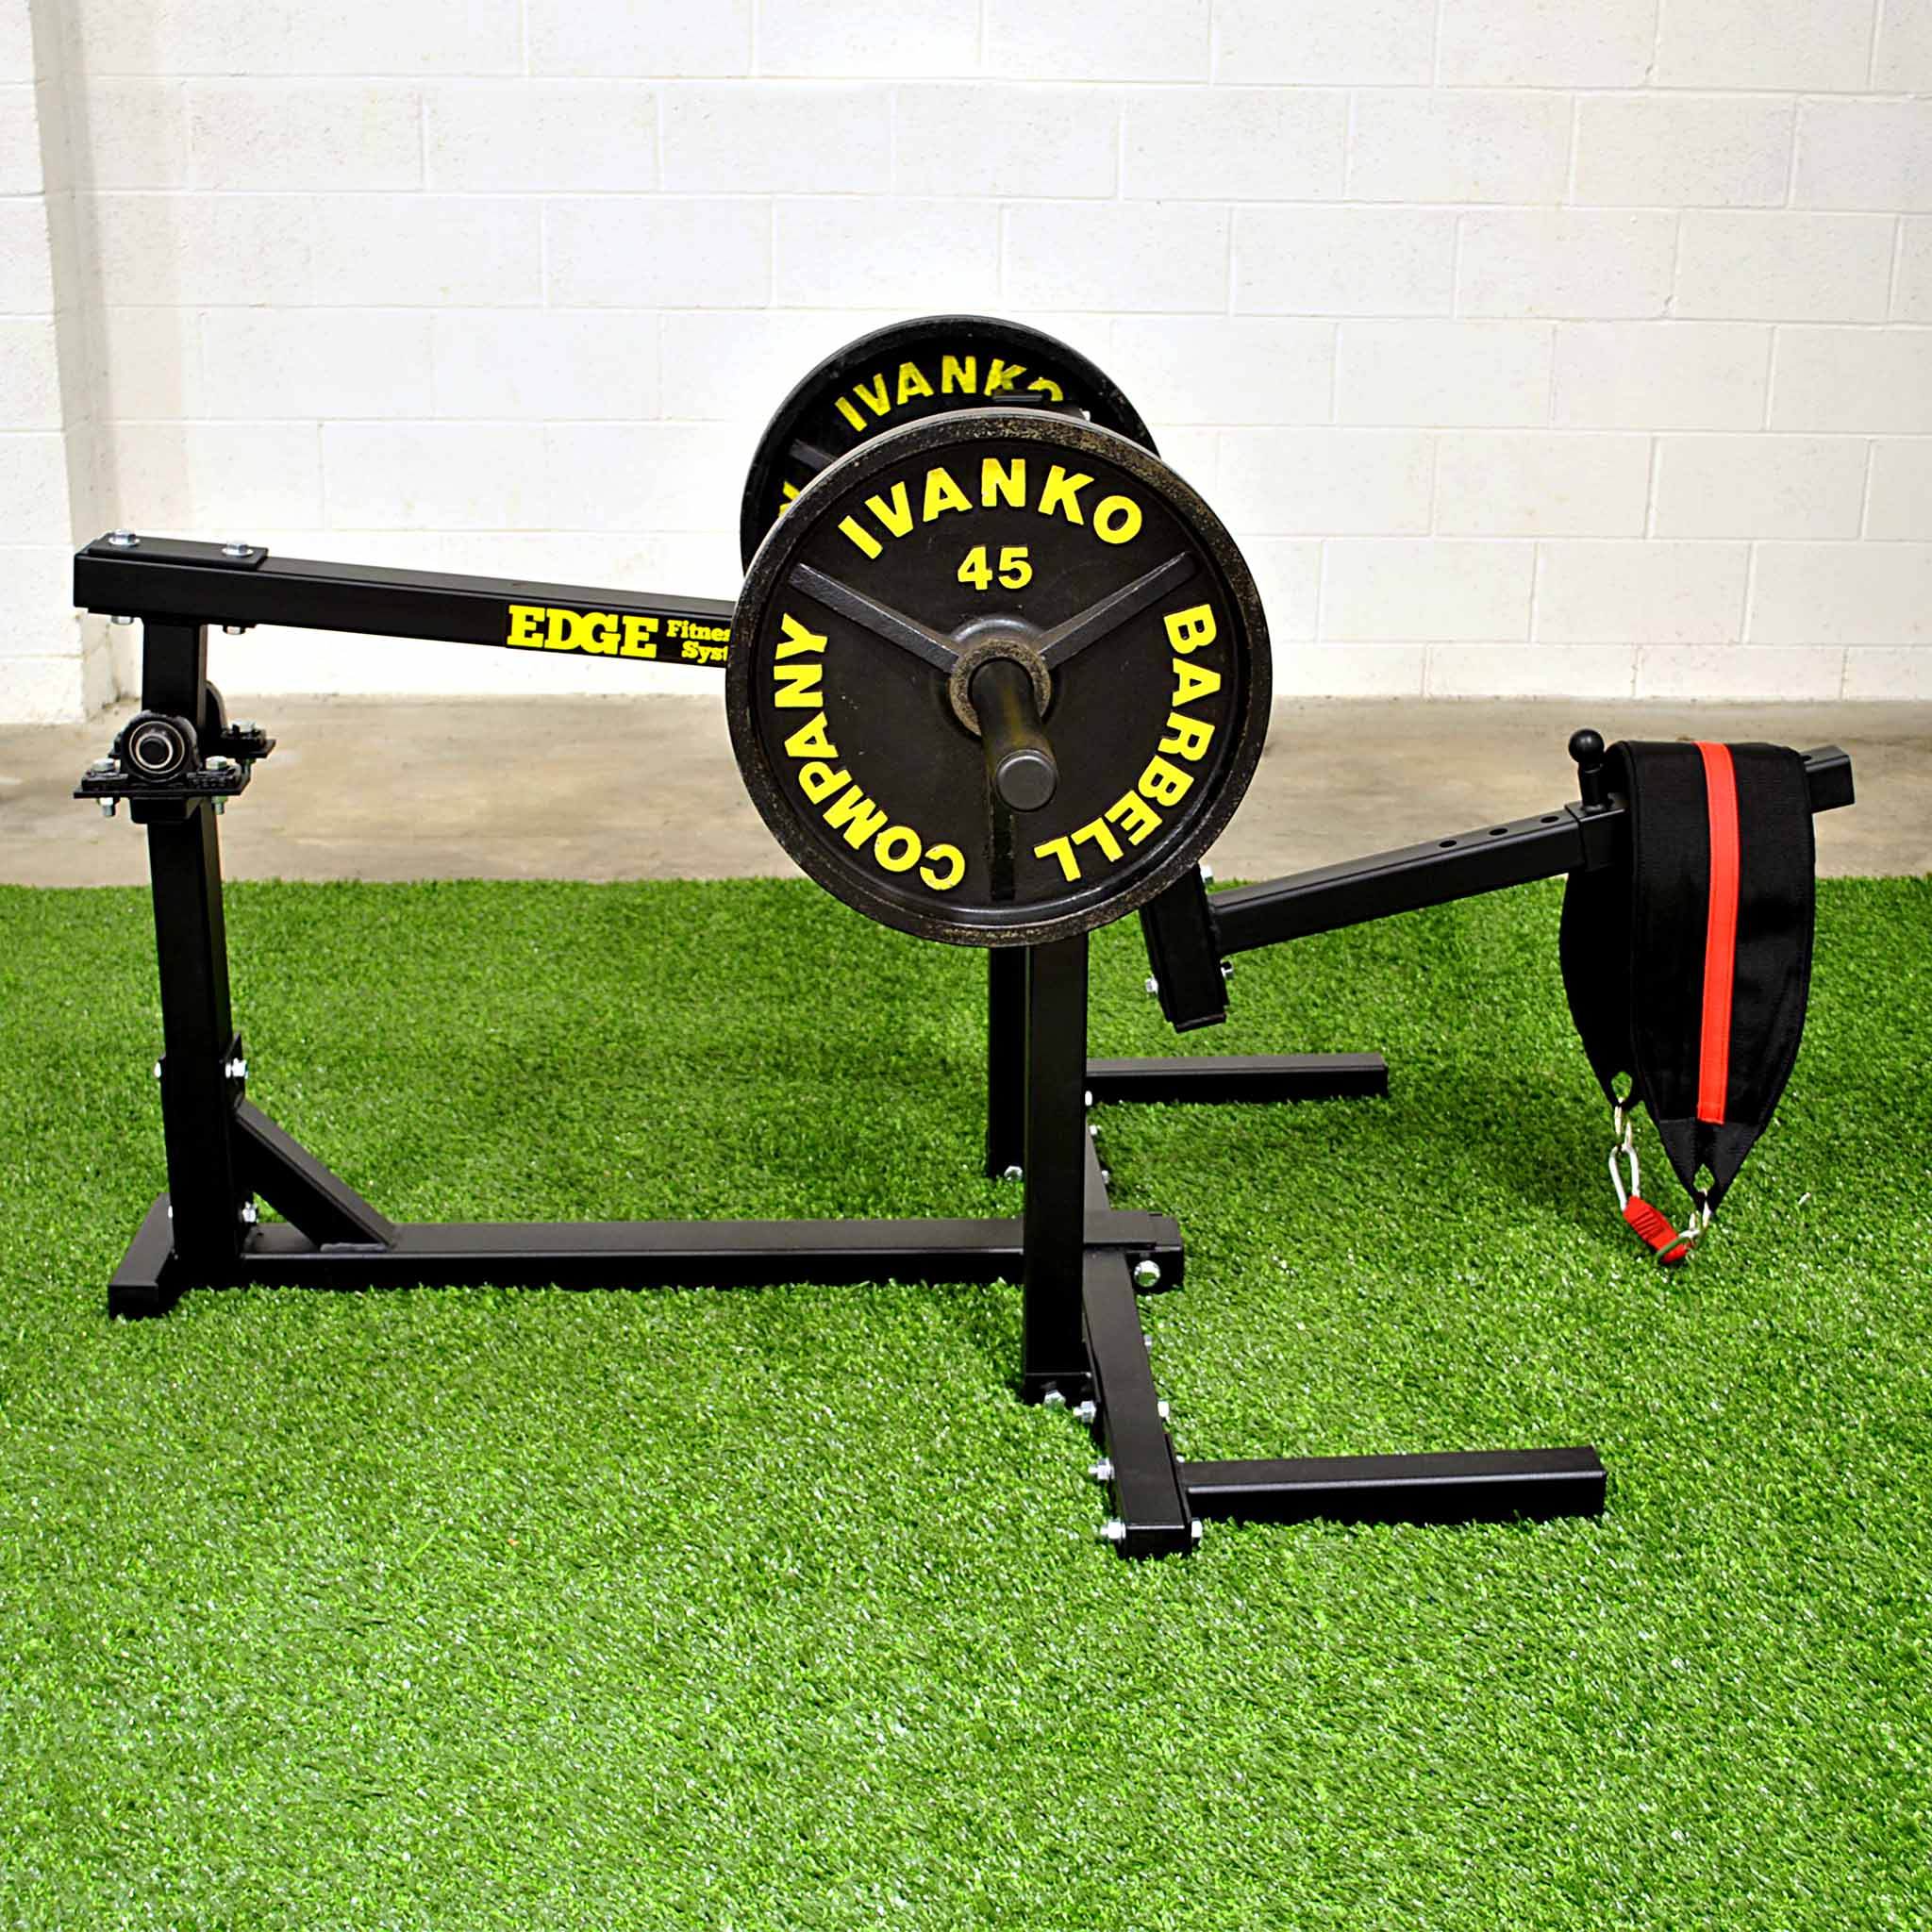 Standard belt squat u edge fitness systems